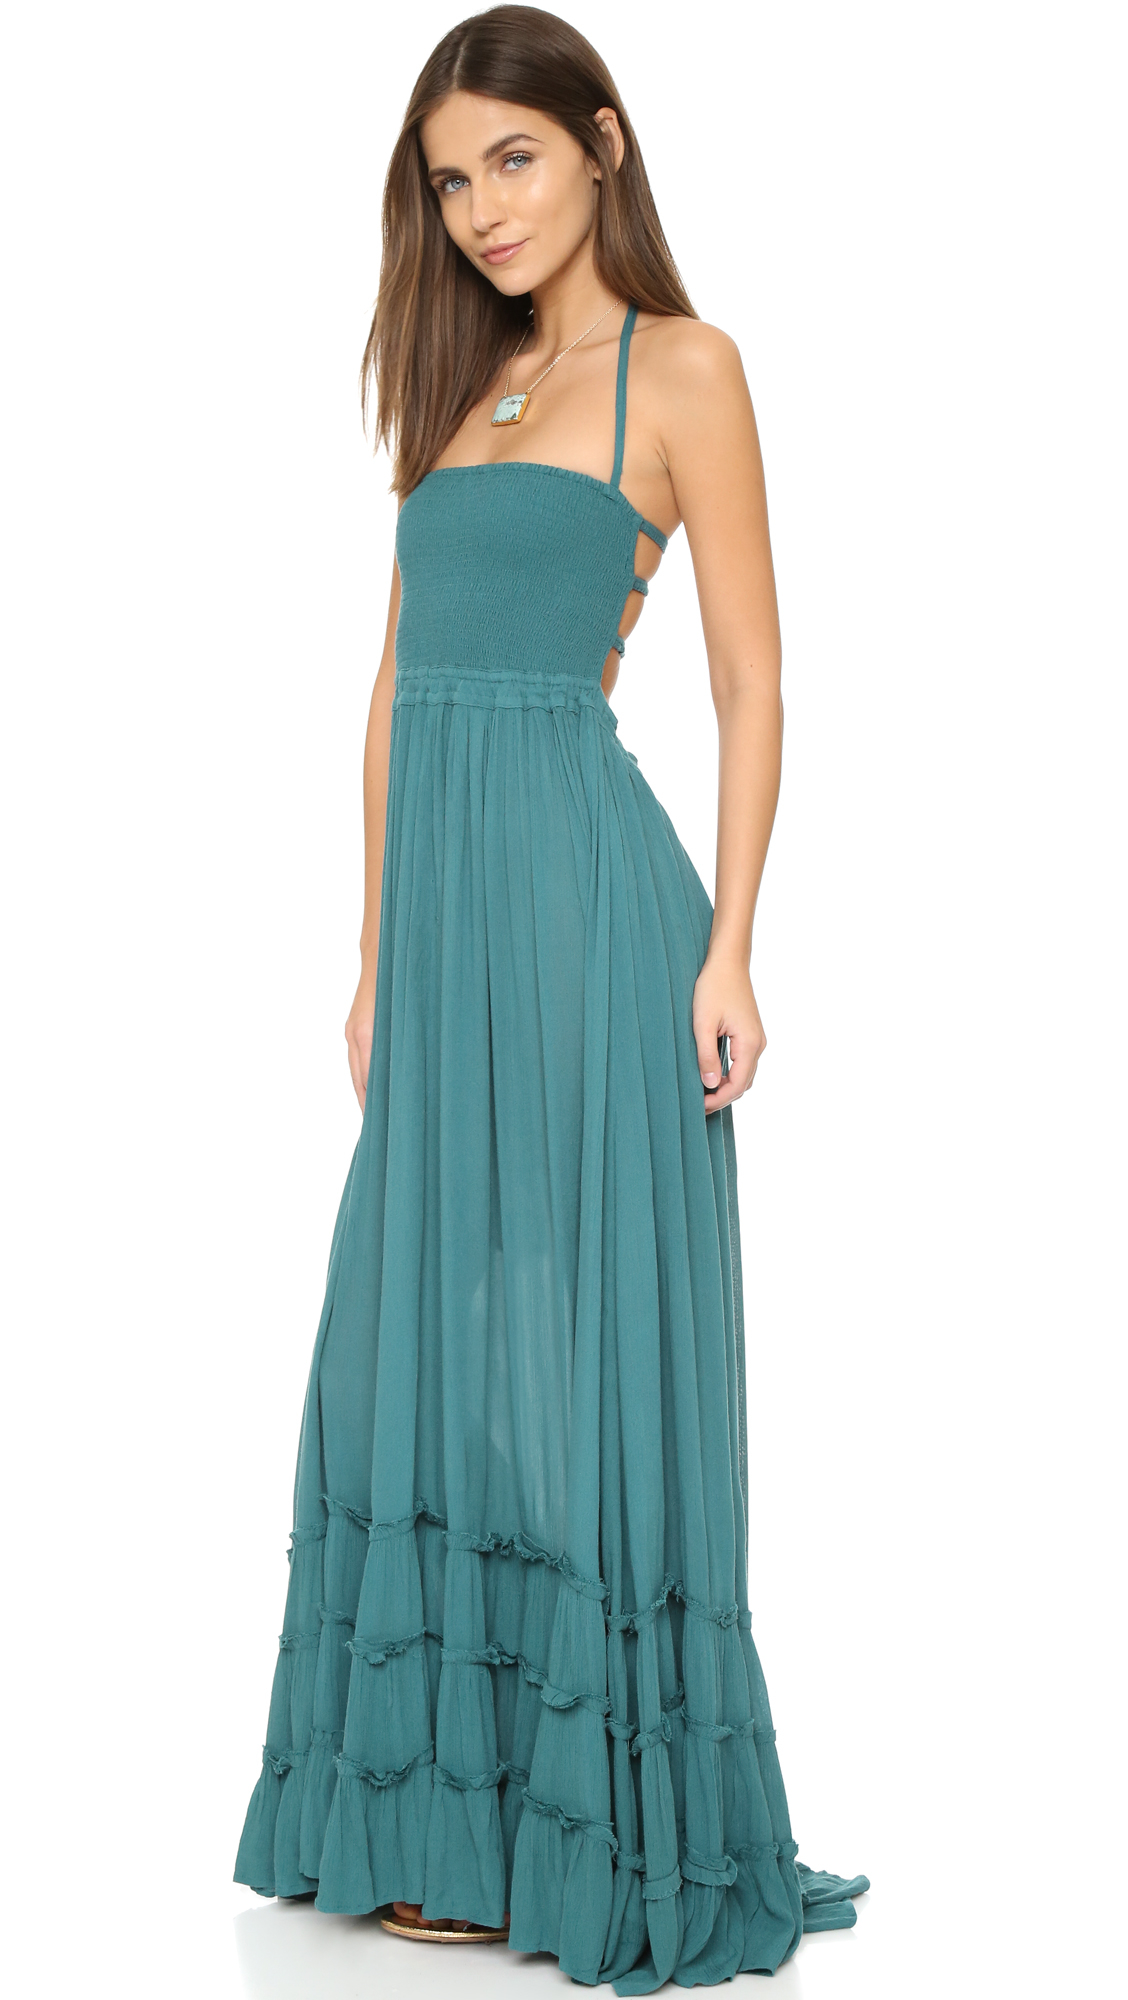 06758f74546 Free People Extratropical Dress - Deep Teal in Blue - Lyst